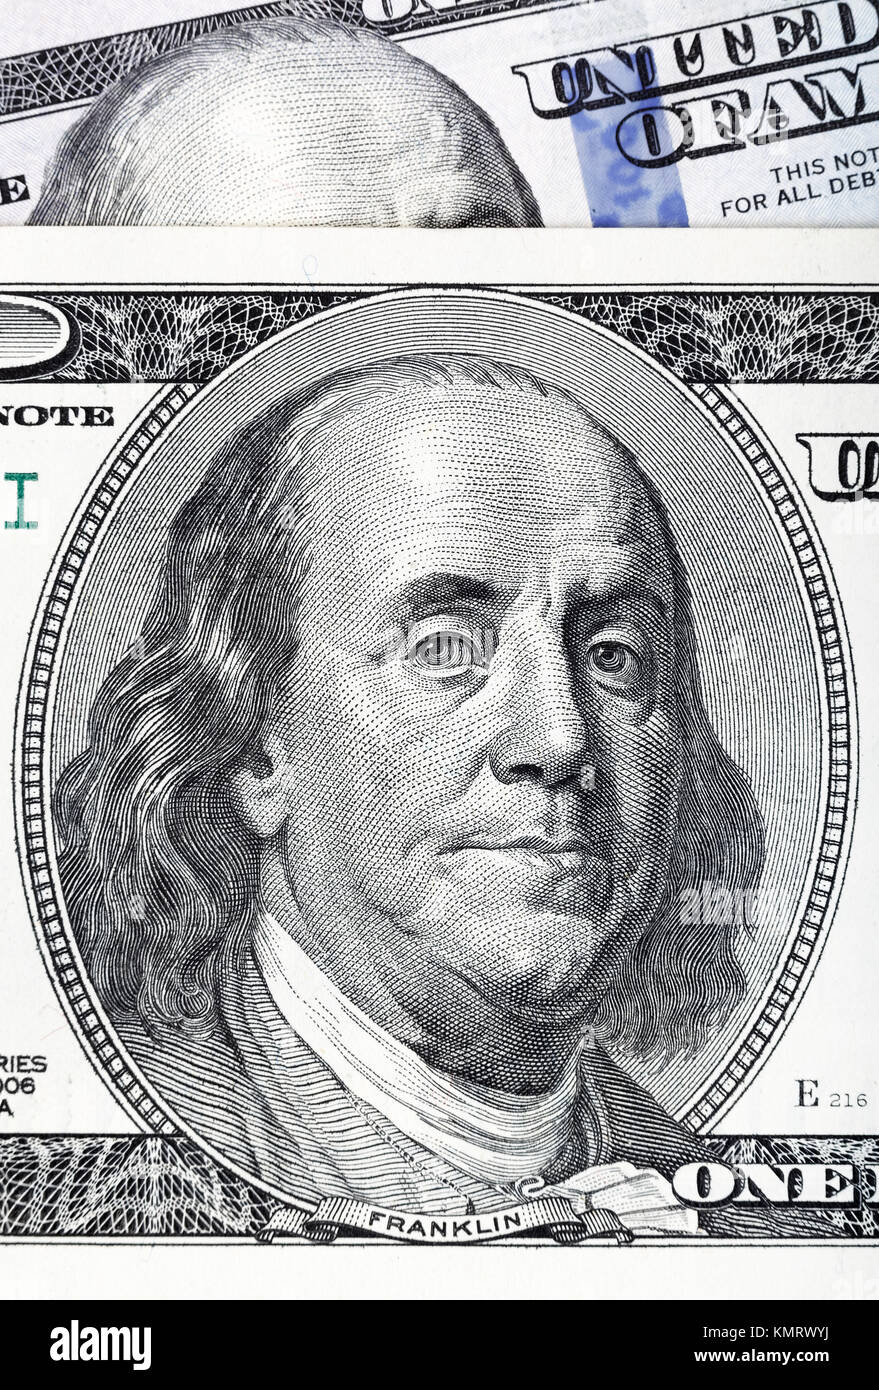 Dollars closeup. Highly detailed picture of U.S. America money.  - Stock Image